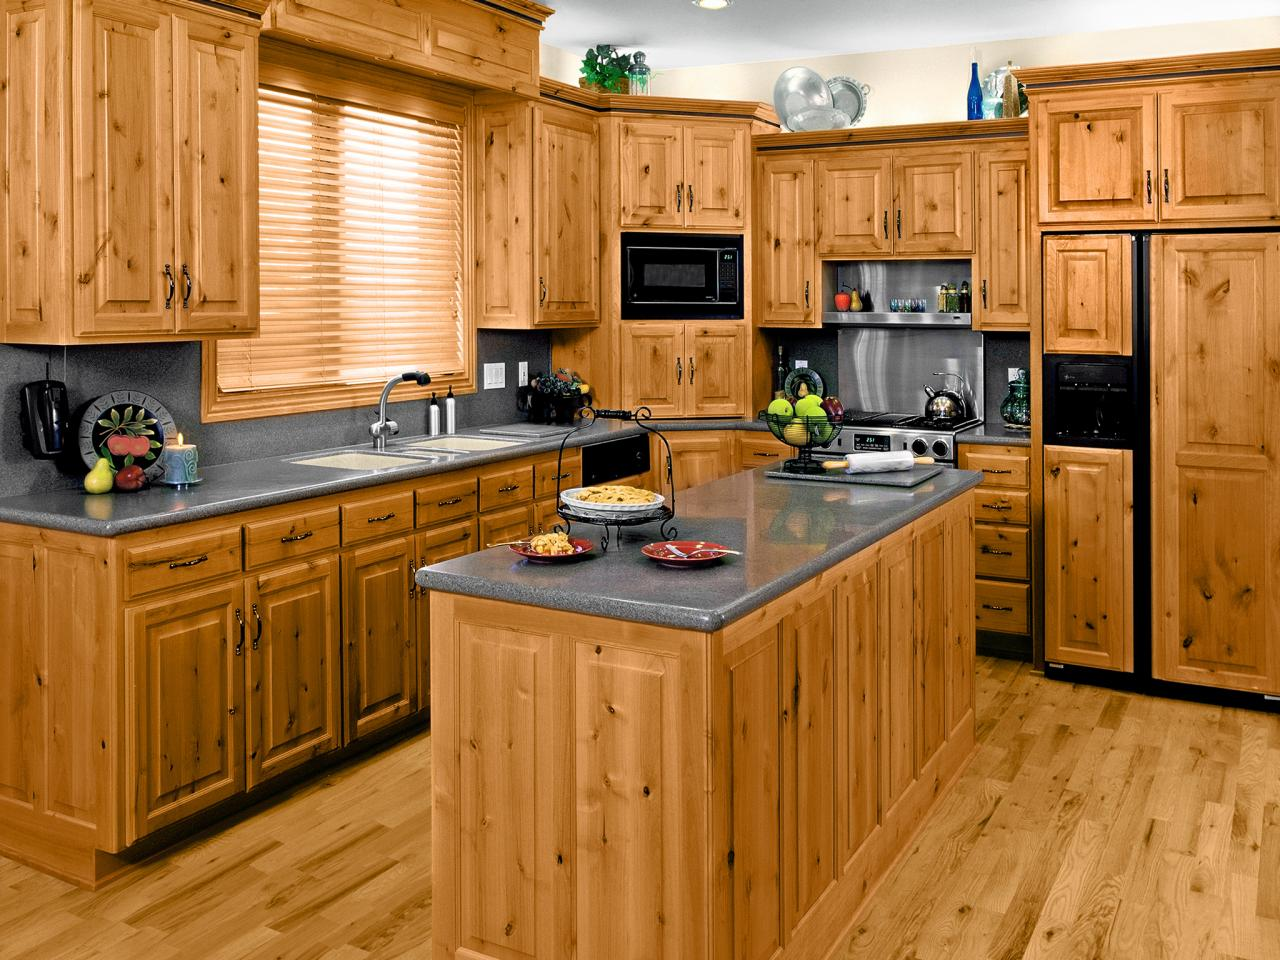 Kitchen Cupboard Tops kitchen cabinet materials: pictures, options, tips & ideas | hgtv